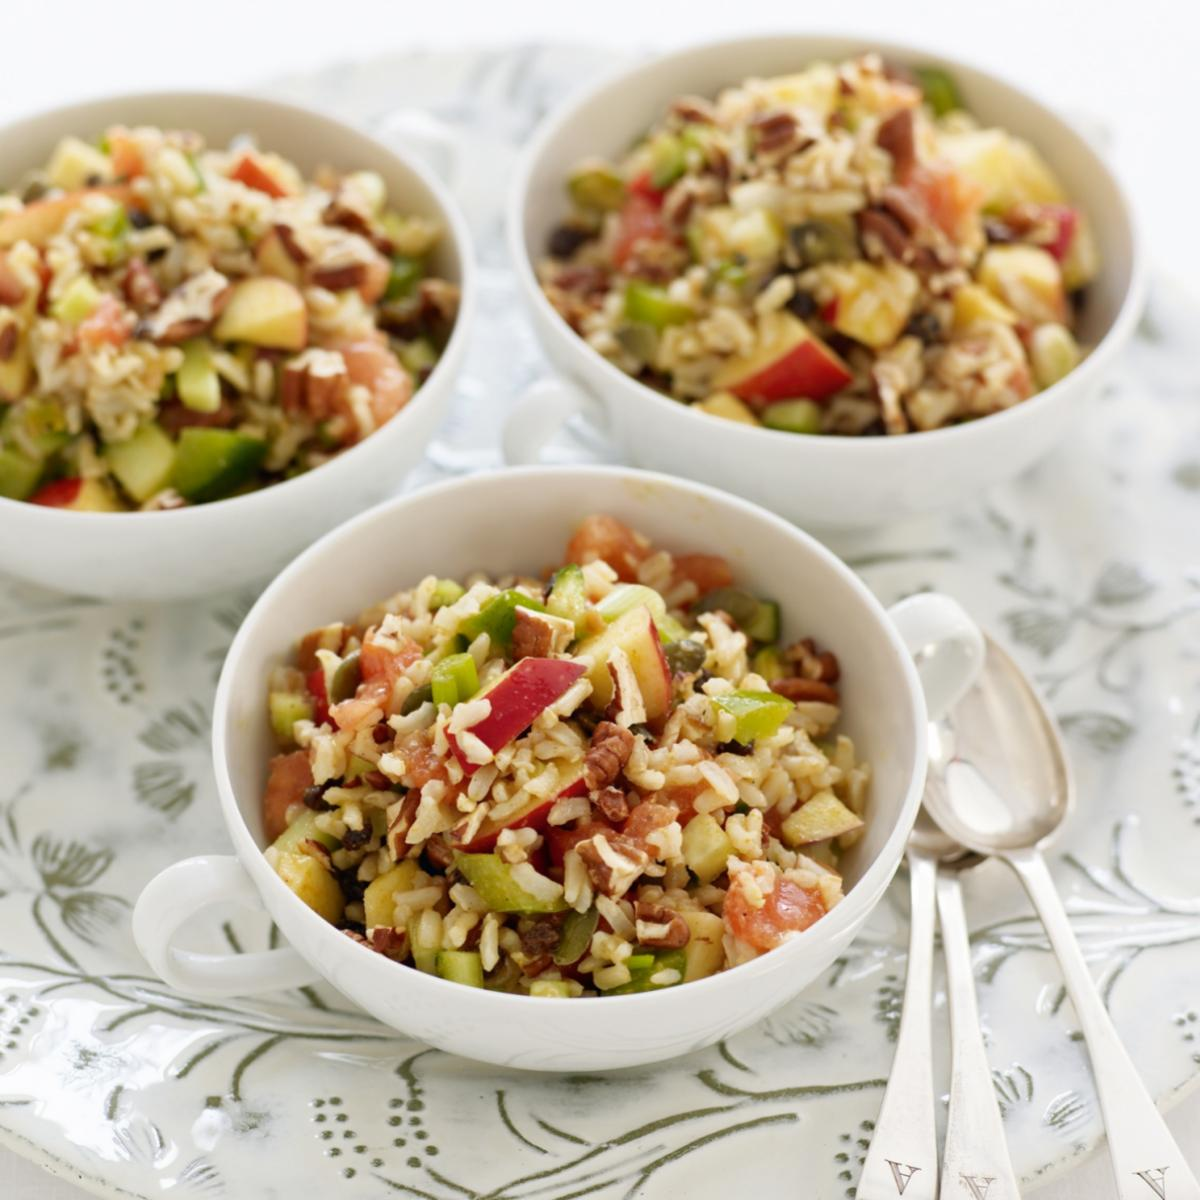 A picture of Delia's Spiced Brown Rice Salad with Nuts and Seeds recipe